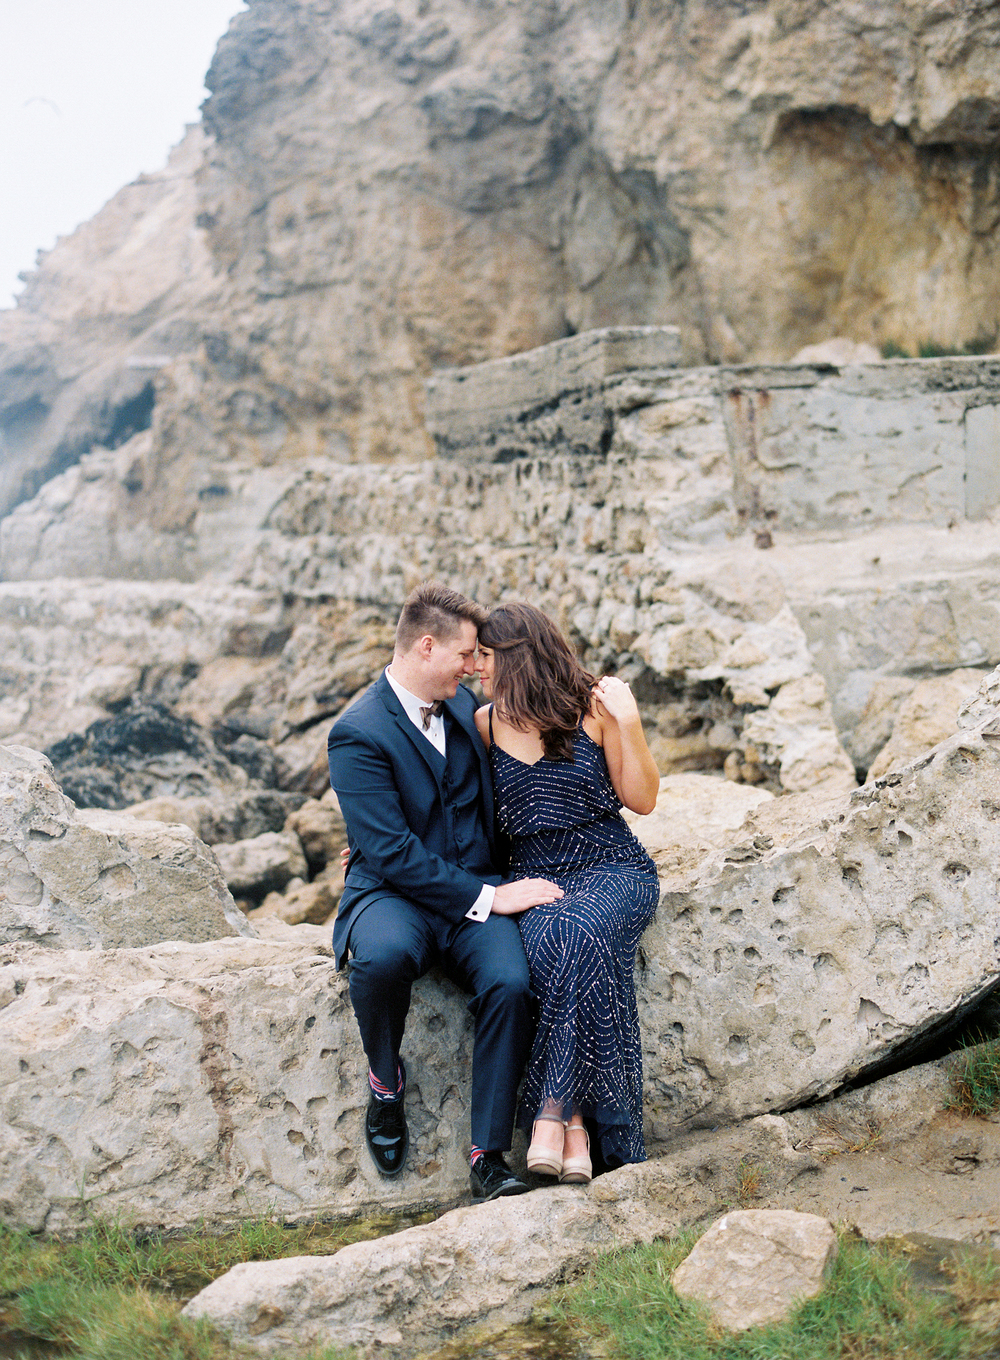 sutro-baths-engagement-45.jpg